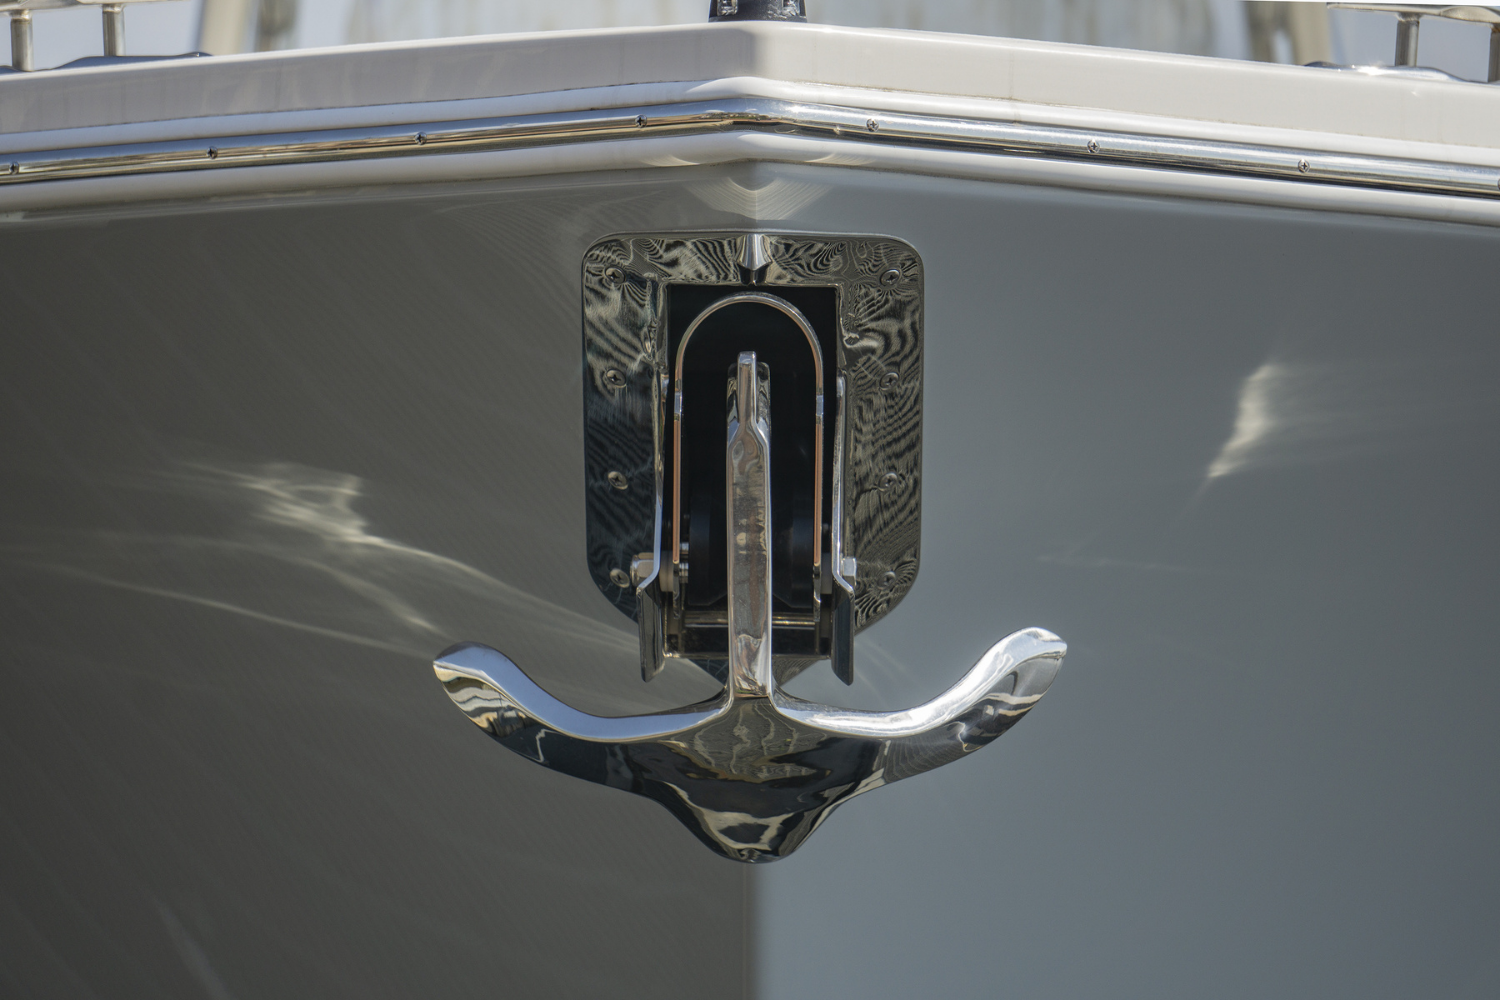 Front close up view of the bow of a boat with a mounted stainless steel anchor